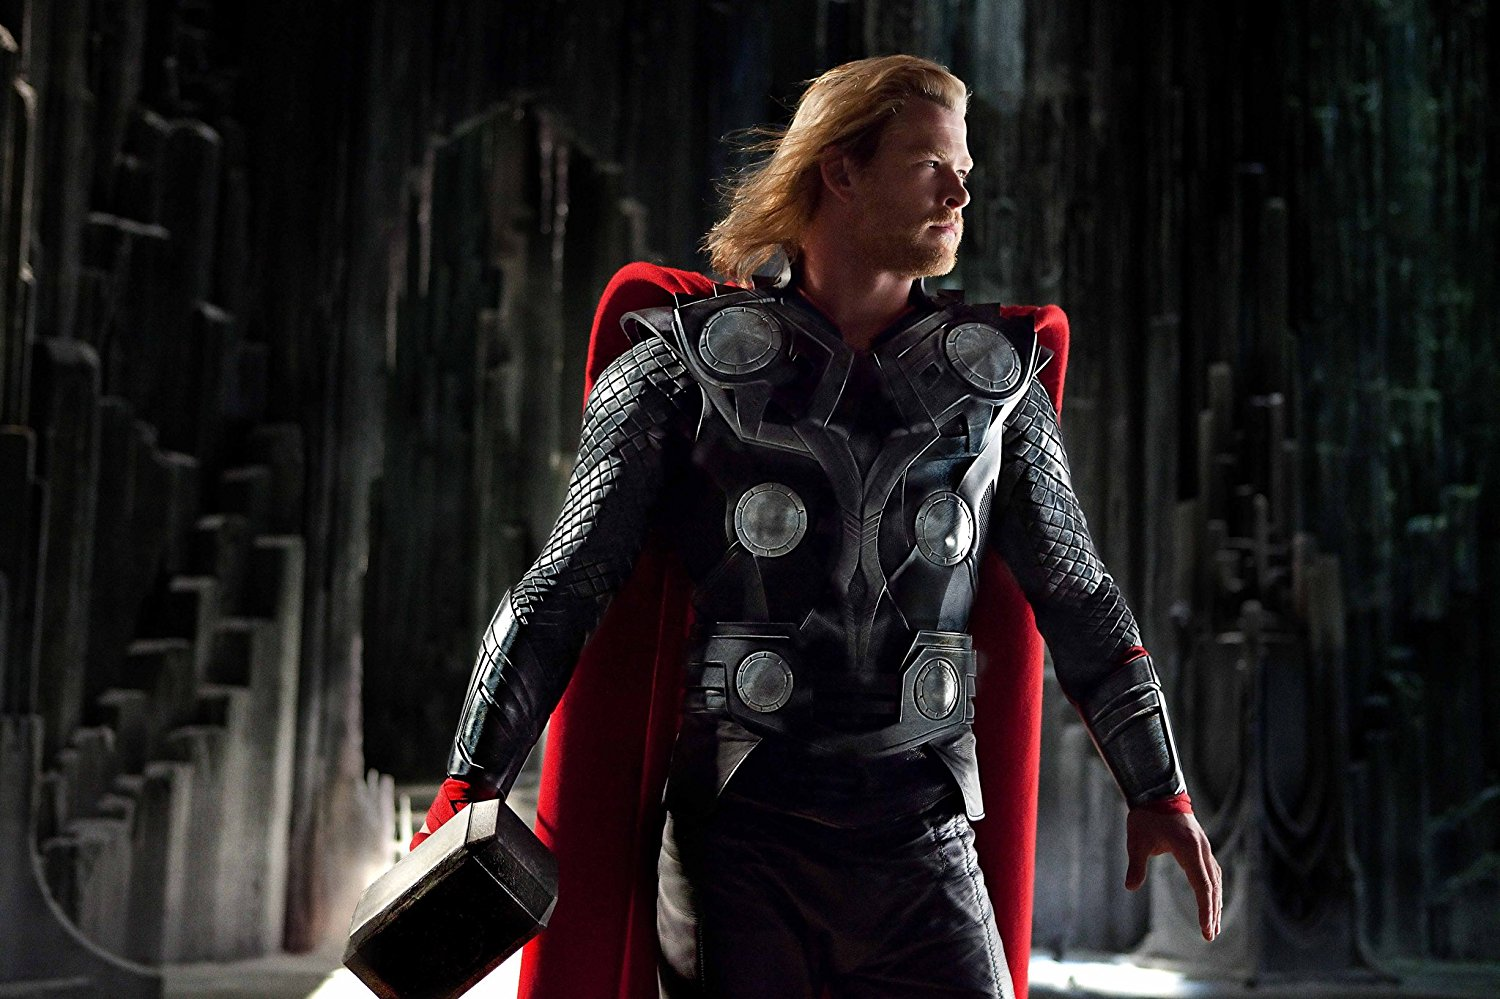 Chris Hemsworth as Thor in Thor (2011)